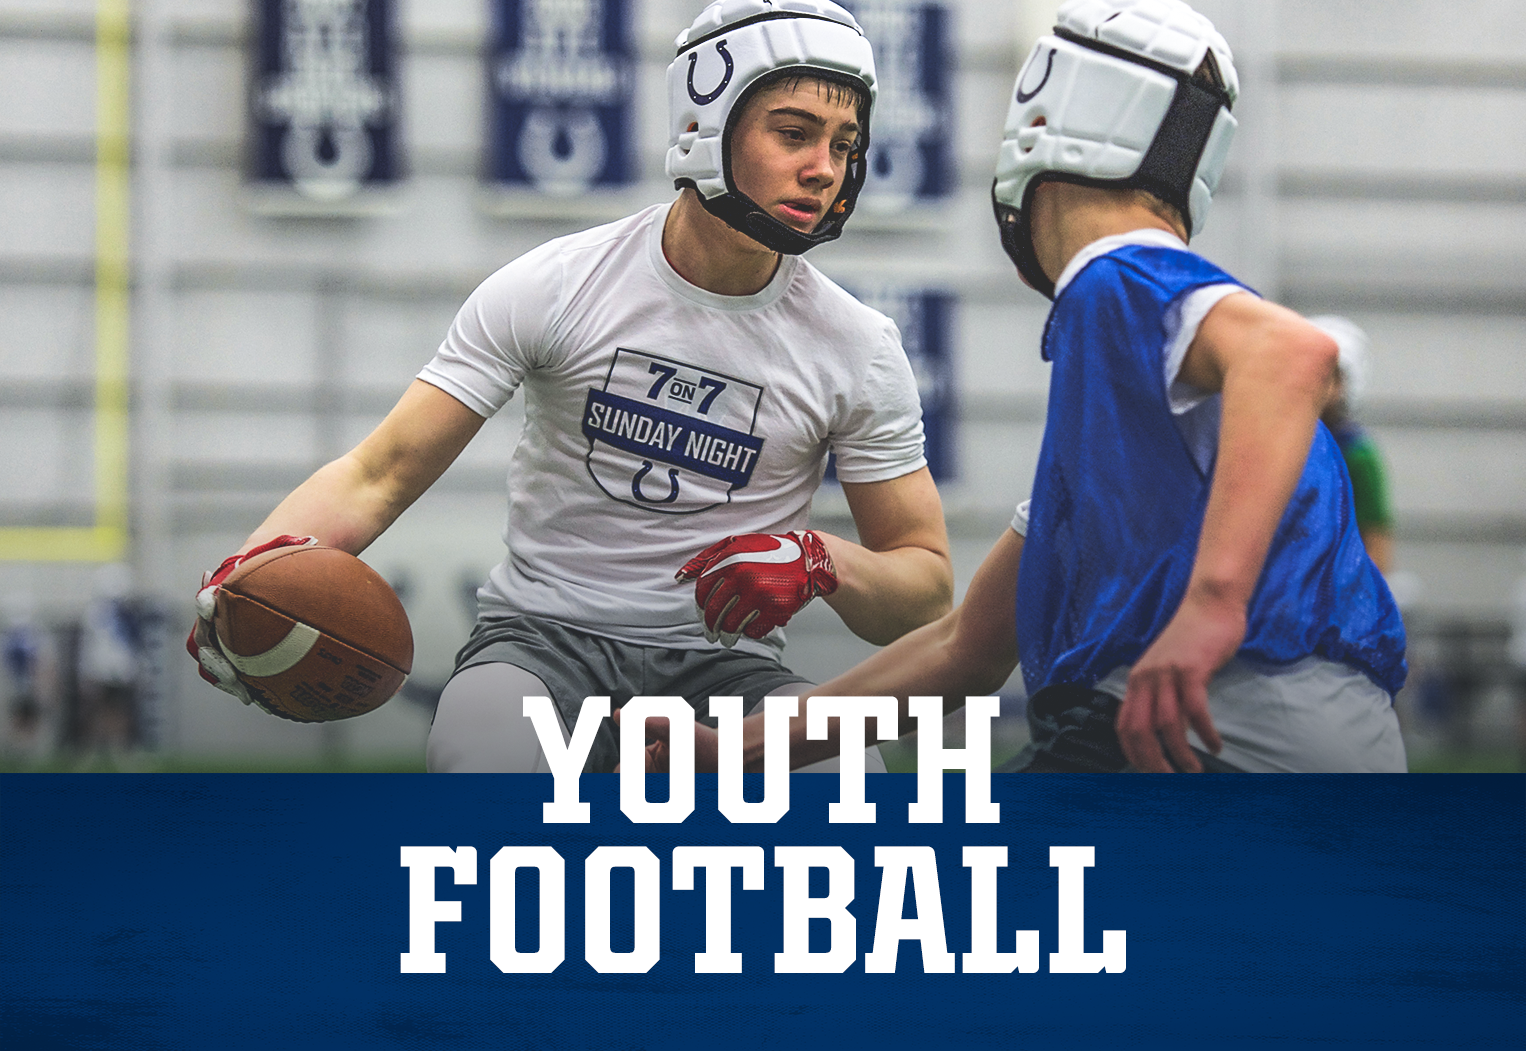 Indianapolis Colts Youth Football